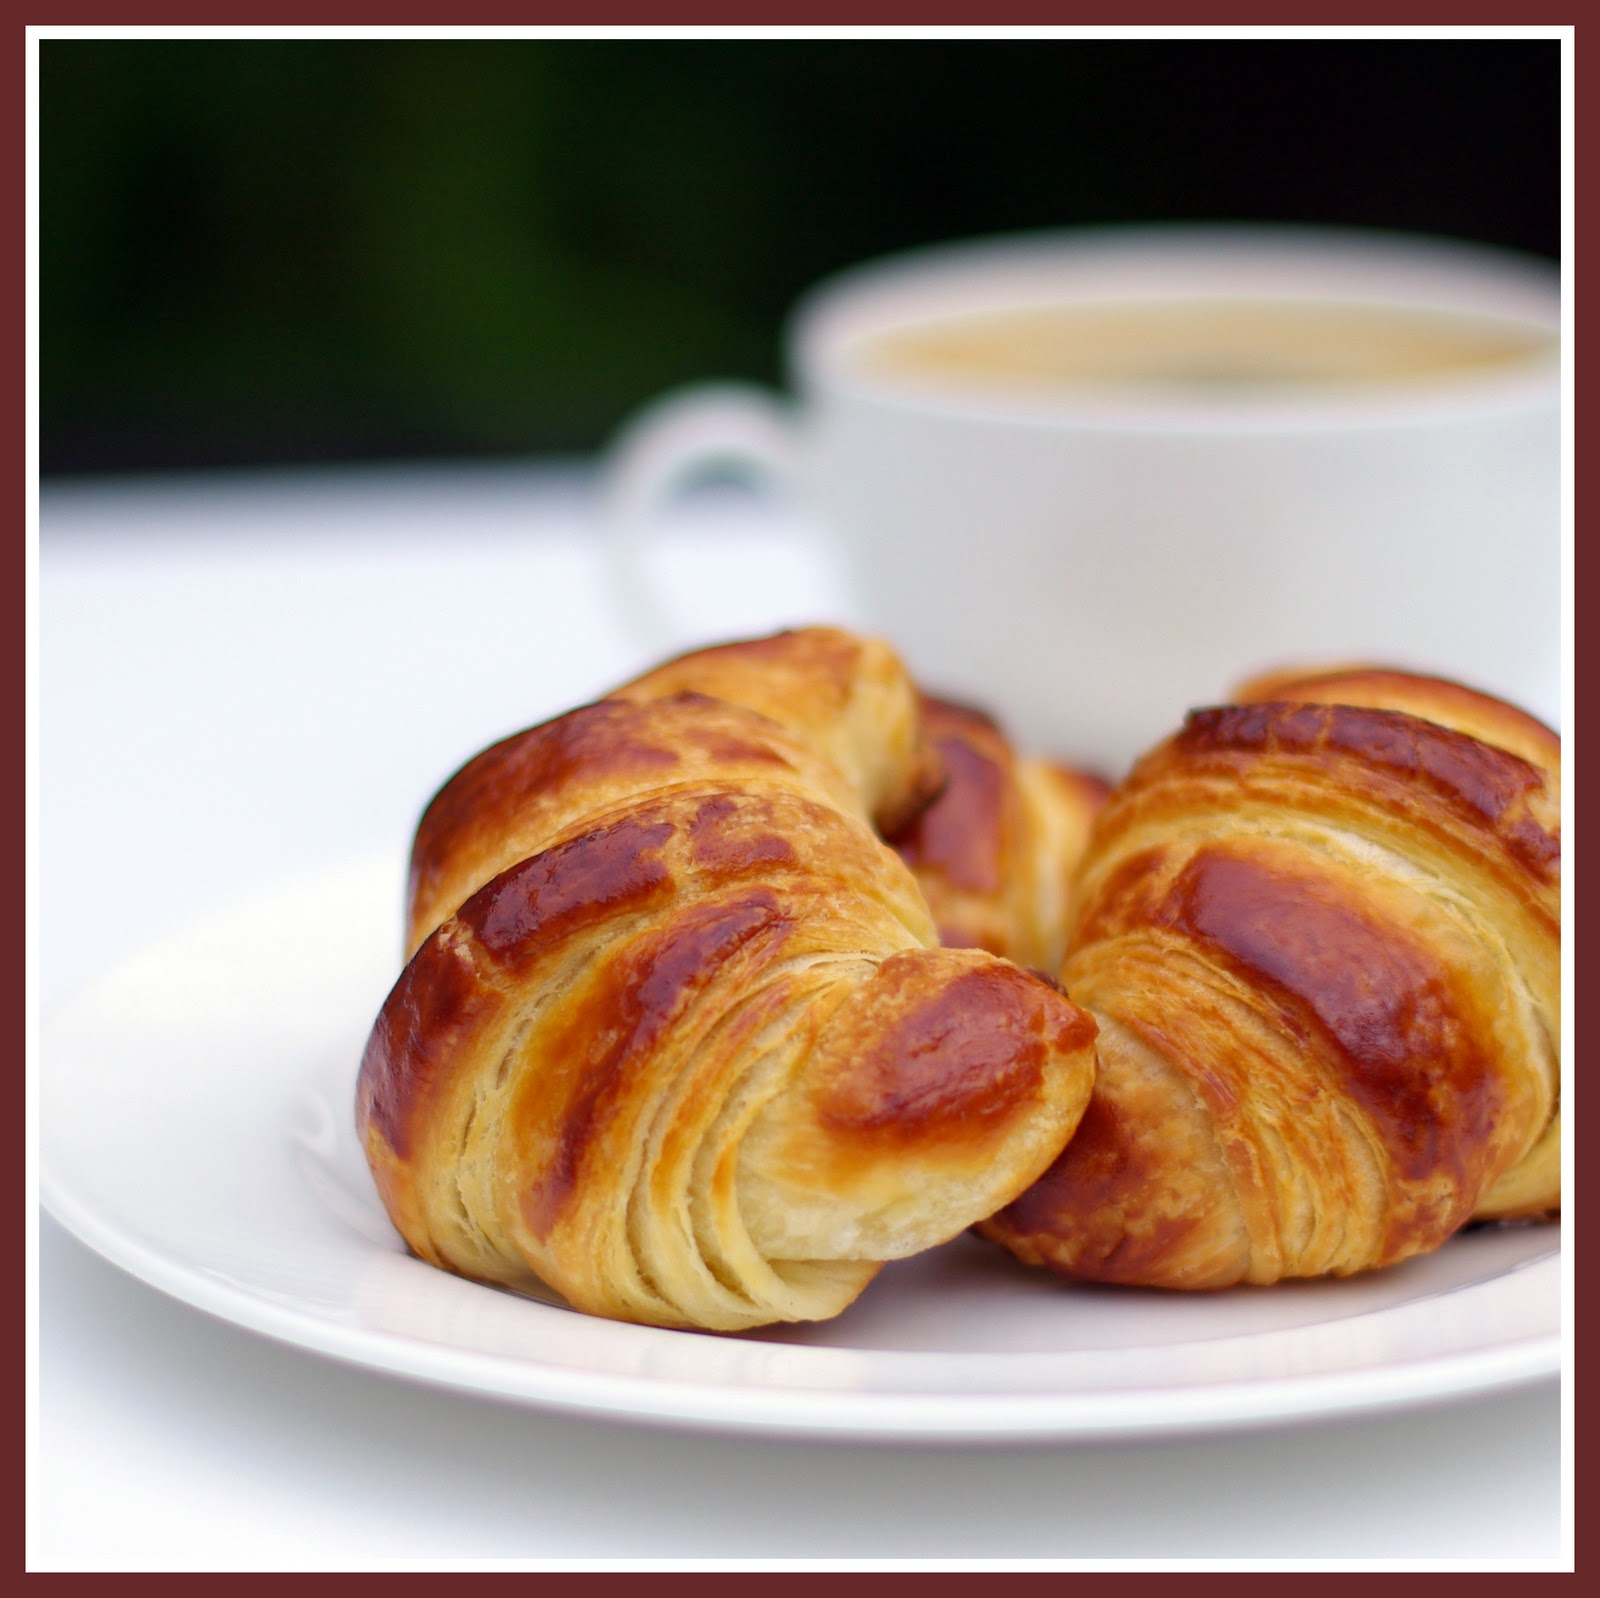 Within the Kitchen: Croissants - Daring Bakers Challenge